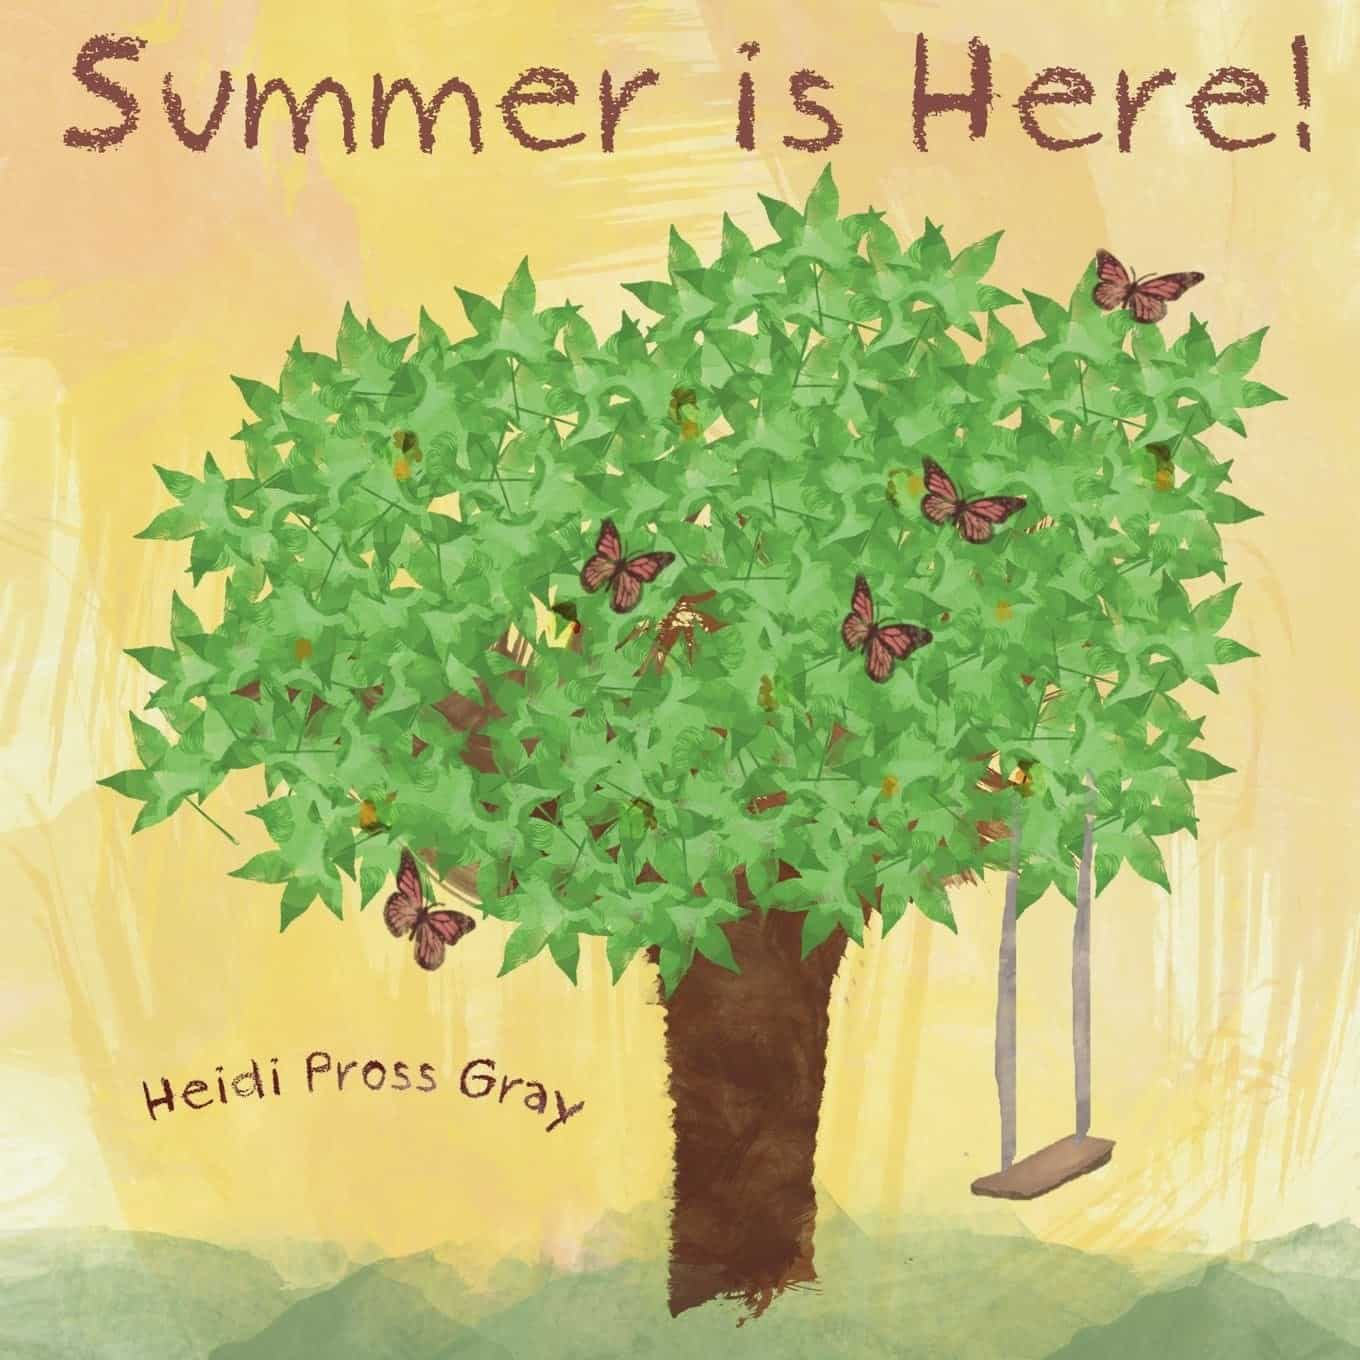 10+ Top Books for Kids to Read this Summer: Summer is Here | www.thepinningmama.com